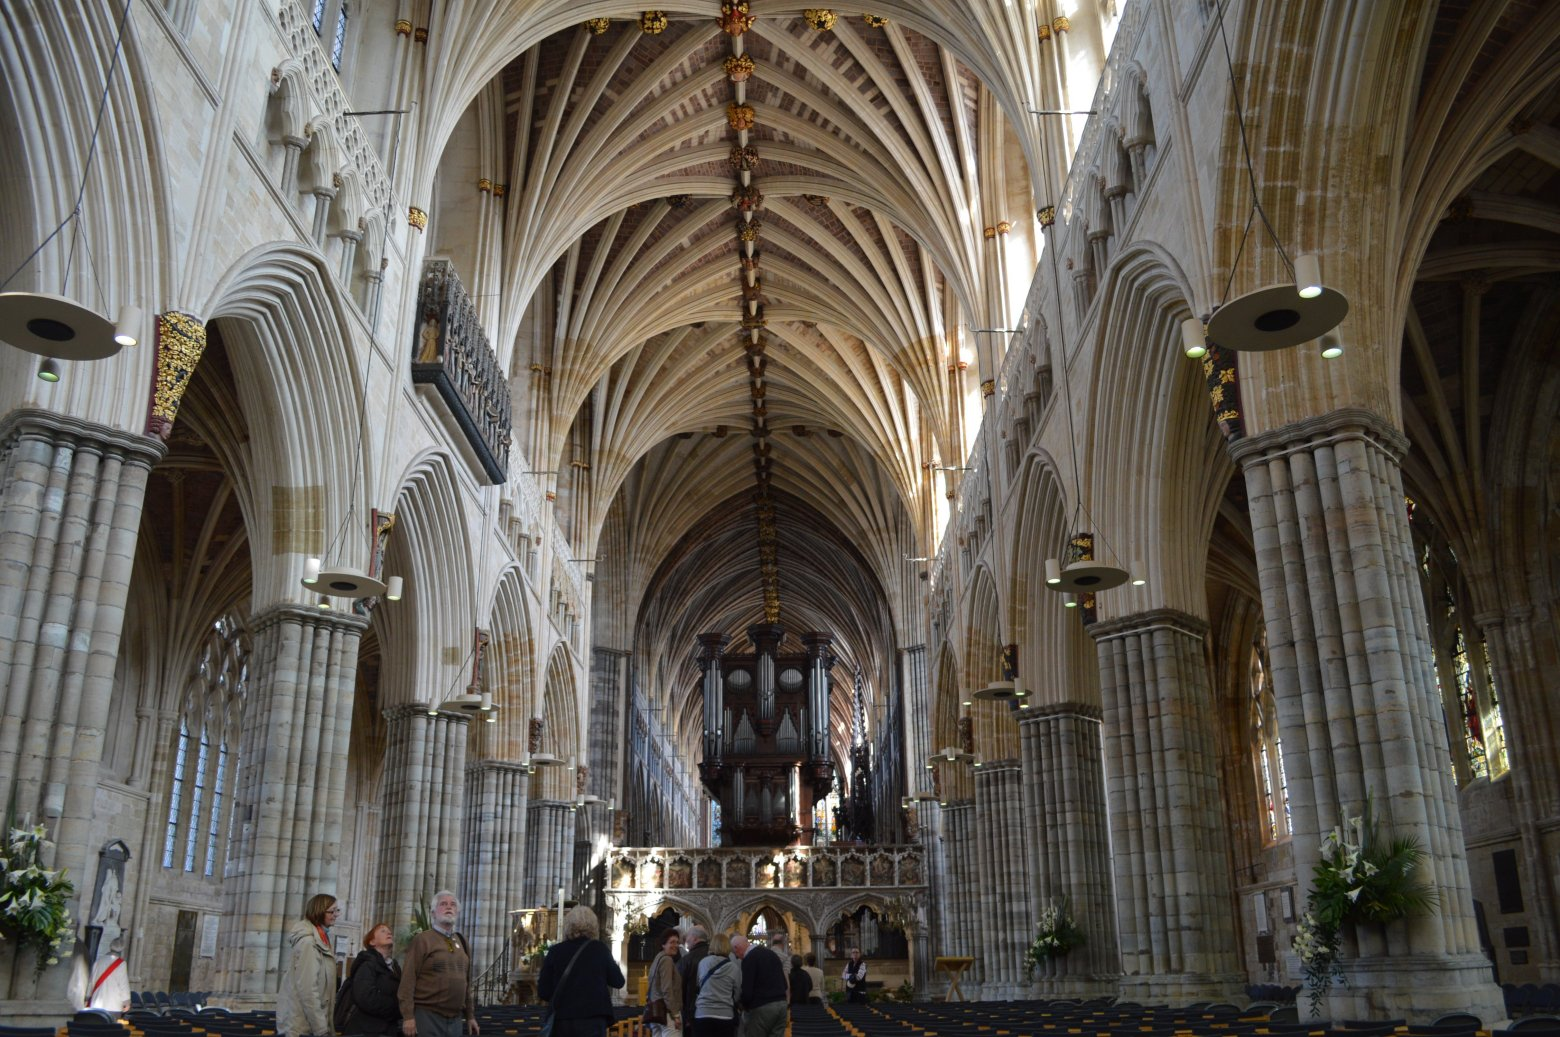 Interior of Exeter Cathedral